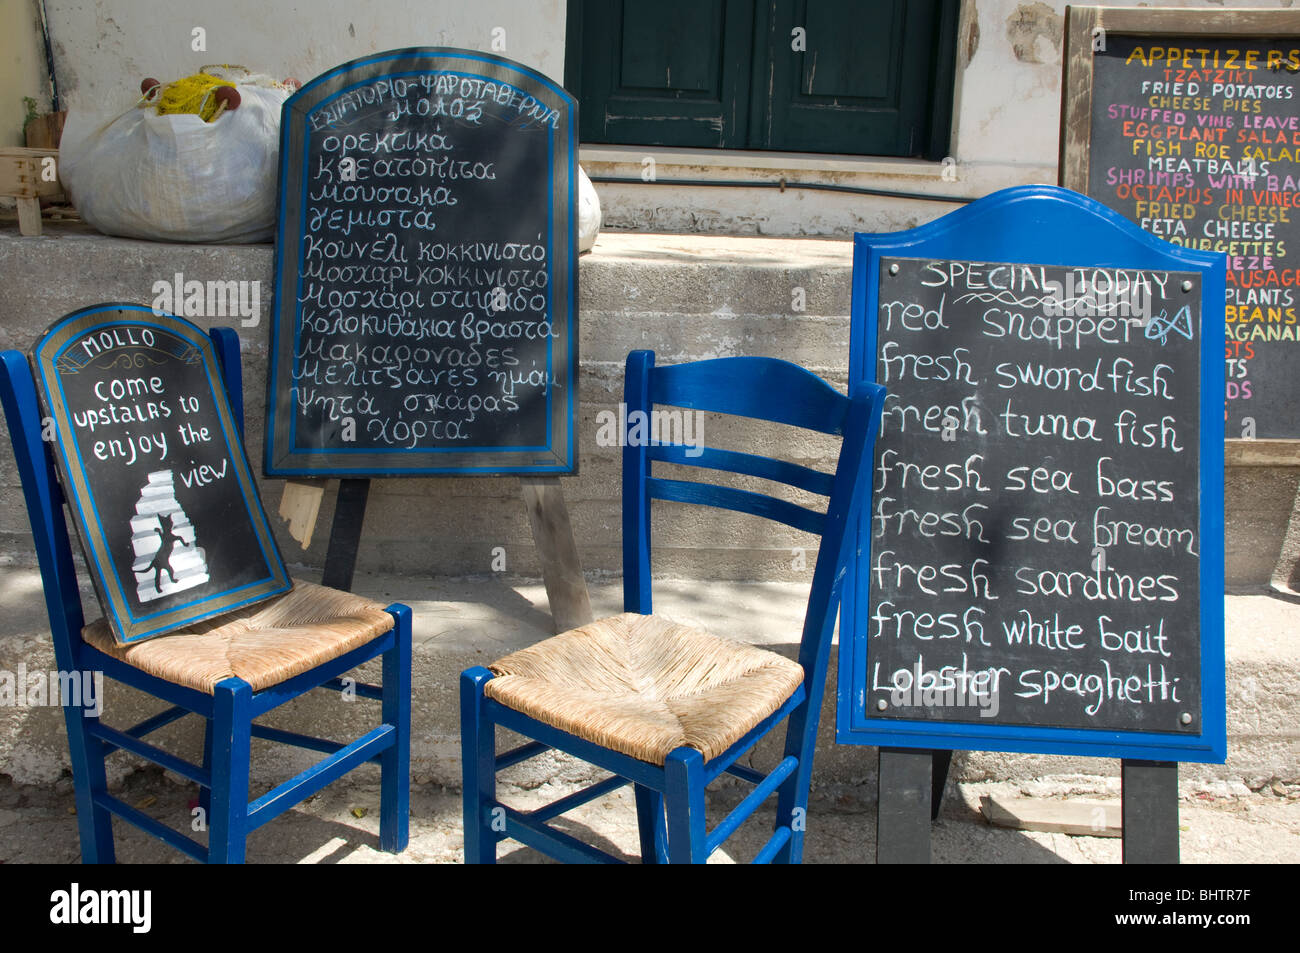 Chalk board menus in Greek and English at a taverna in Asos, Kefalonia, the Ionian Islands, Greece - Stock Image